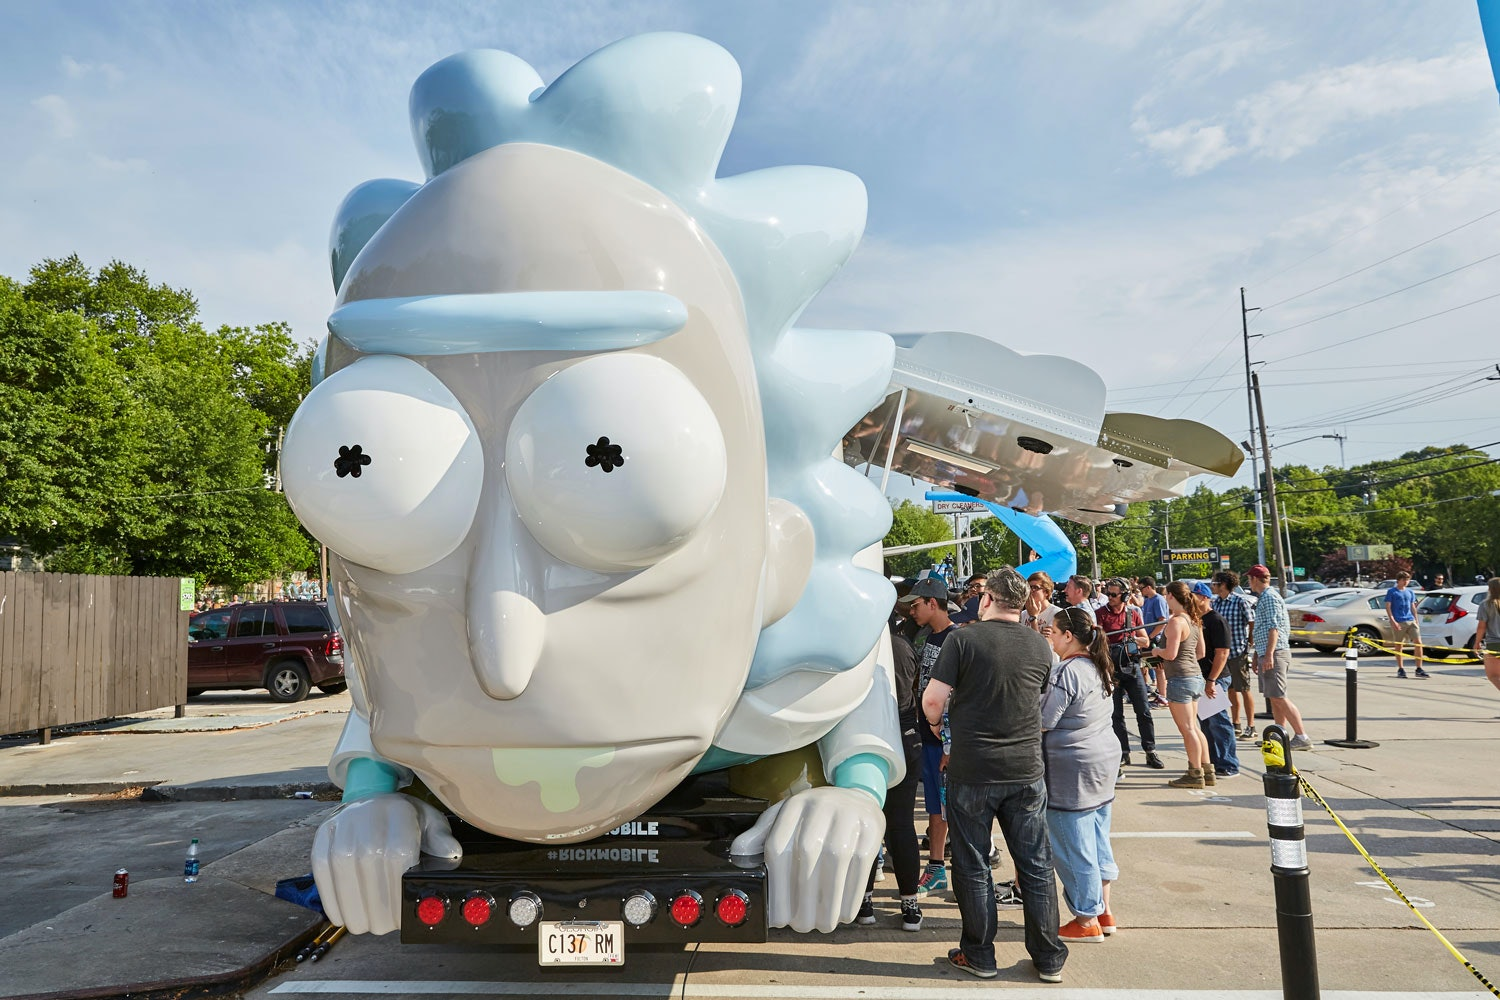 The Rickmobile is an uncannily accurate representation of the mad scientist Rick Sanchez.